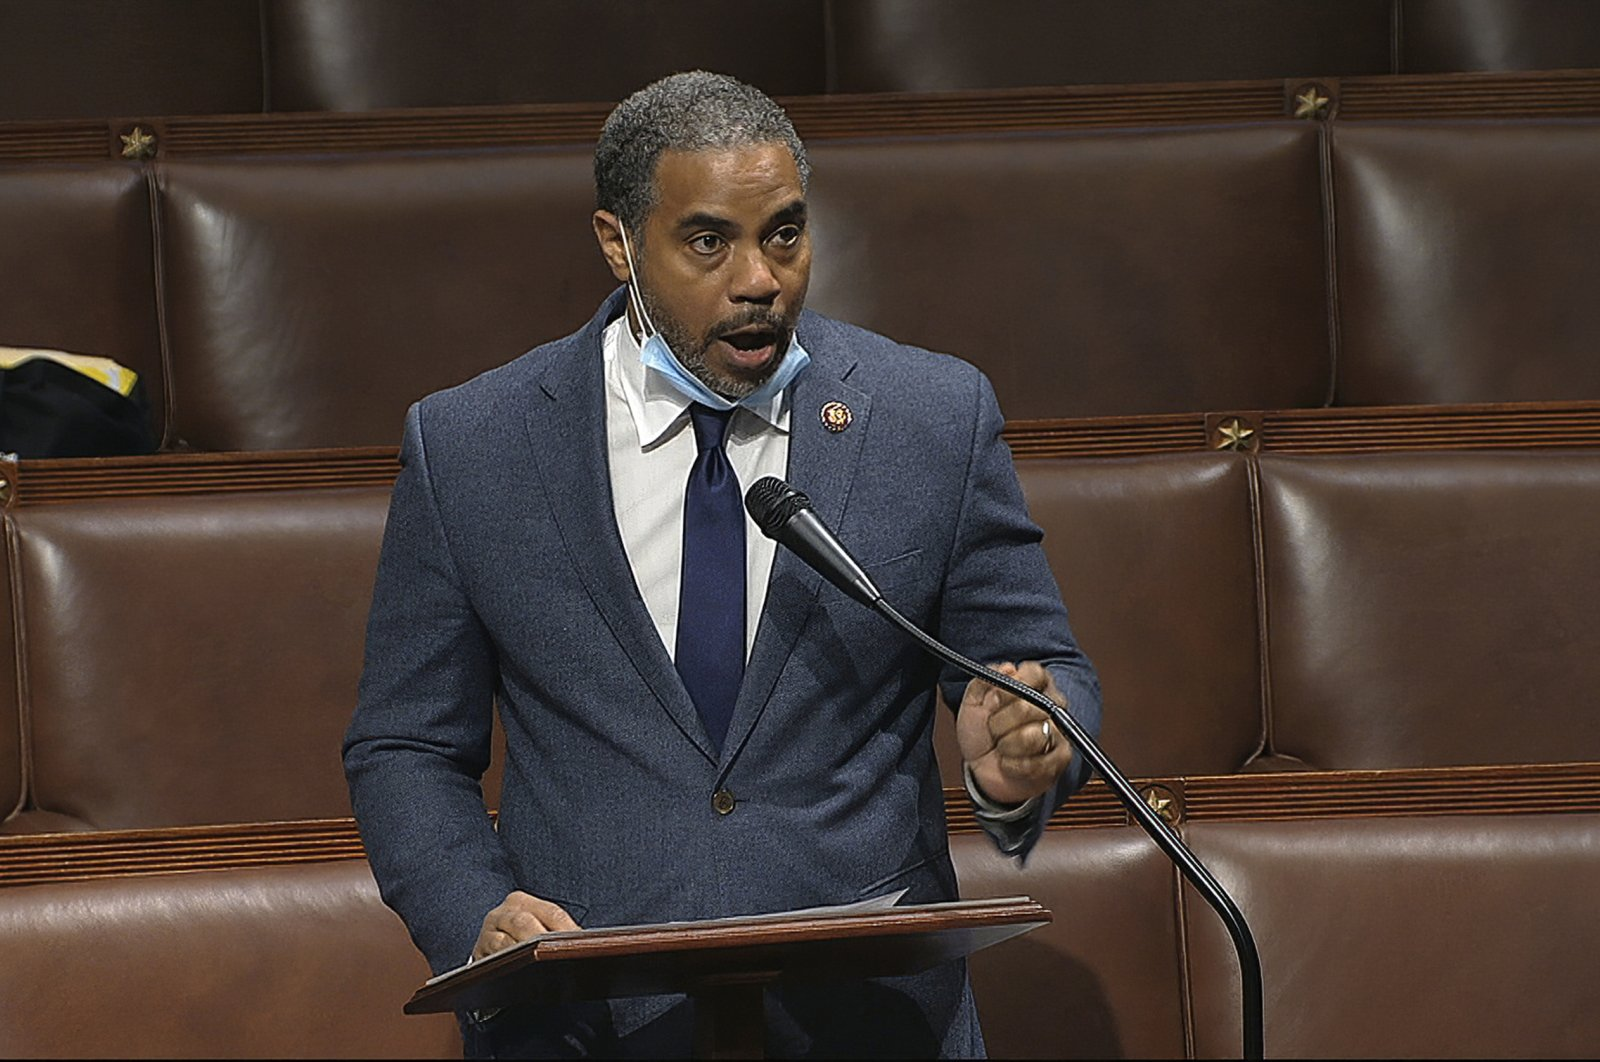 Congressional Black Caucus (CBC) member Rep. Steven Horsford, speaks on the floor of the House of Representatives at the U.S. Capitol, Washington, D.C., April 23, 2020. (AP Photo)